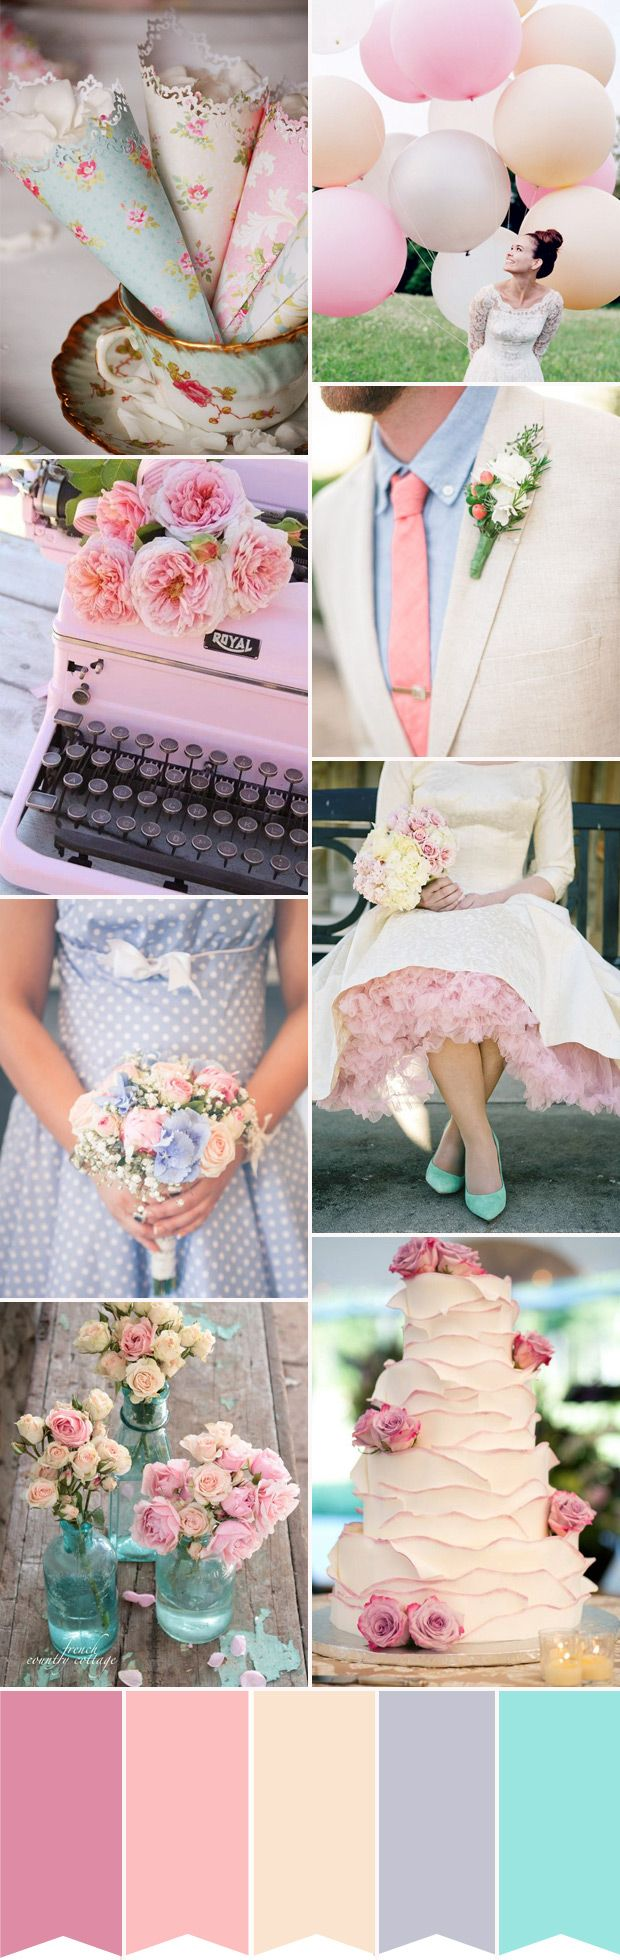 Pretty Pastel Pink and Blue Colour Inspiration | www.onefabday.com